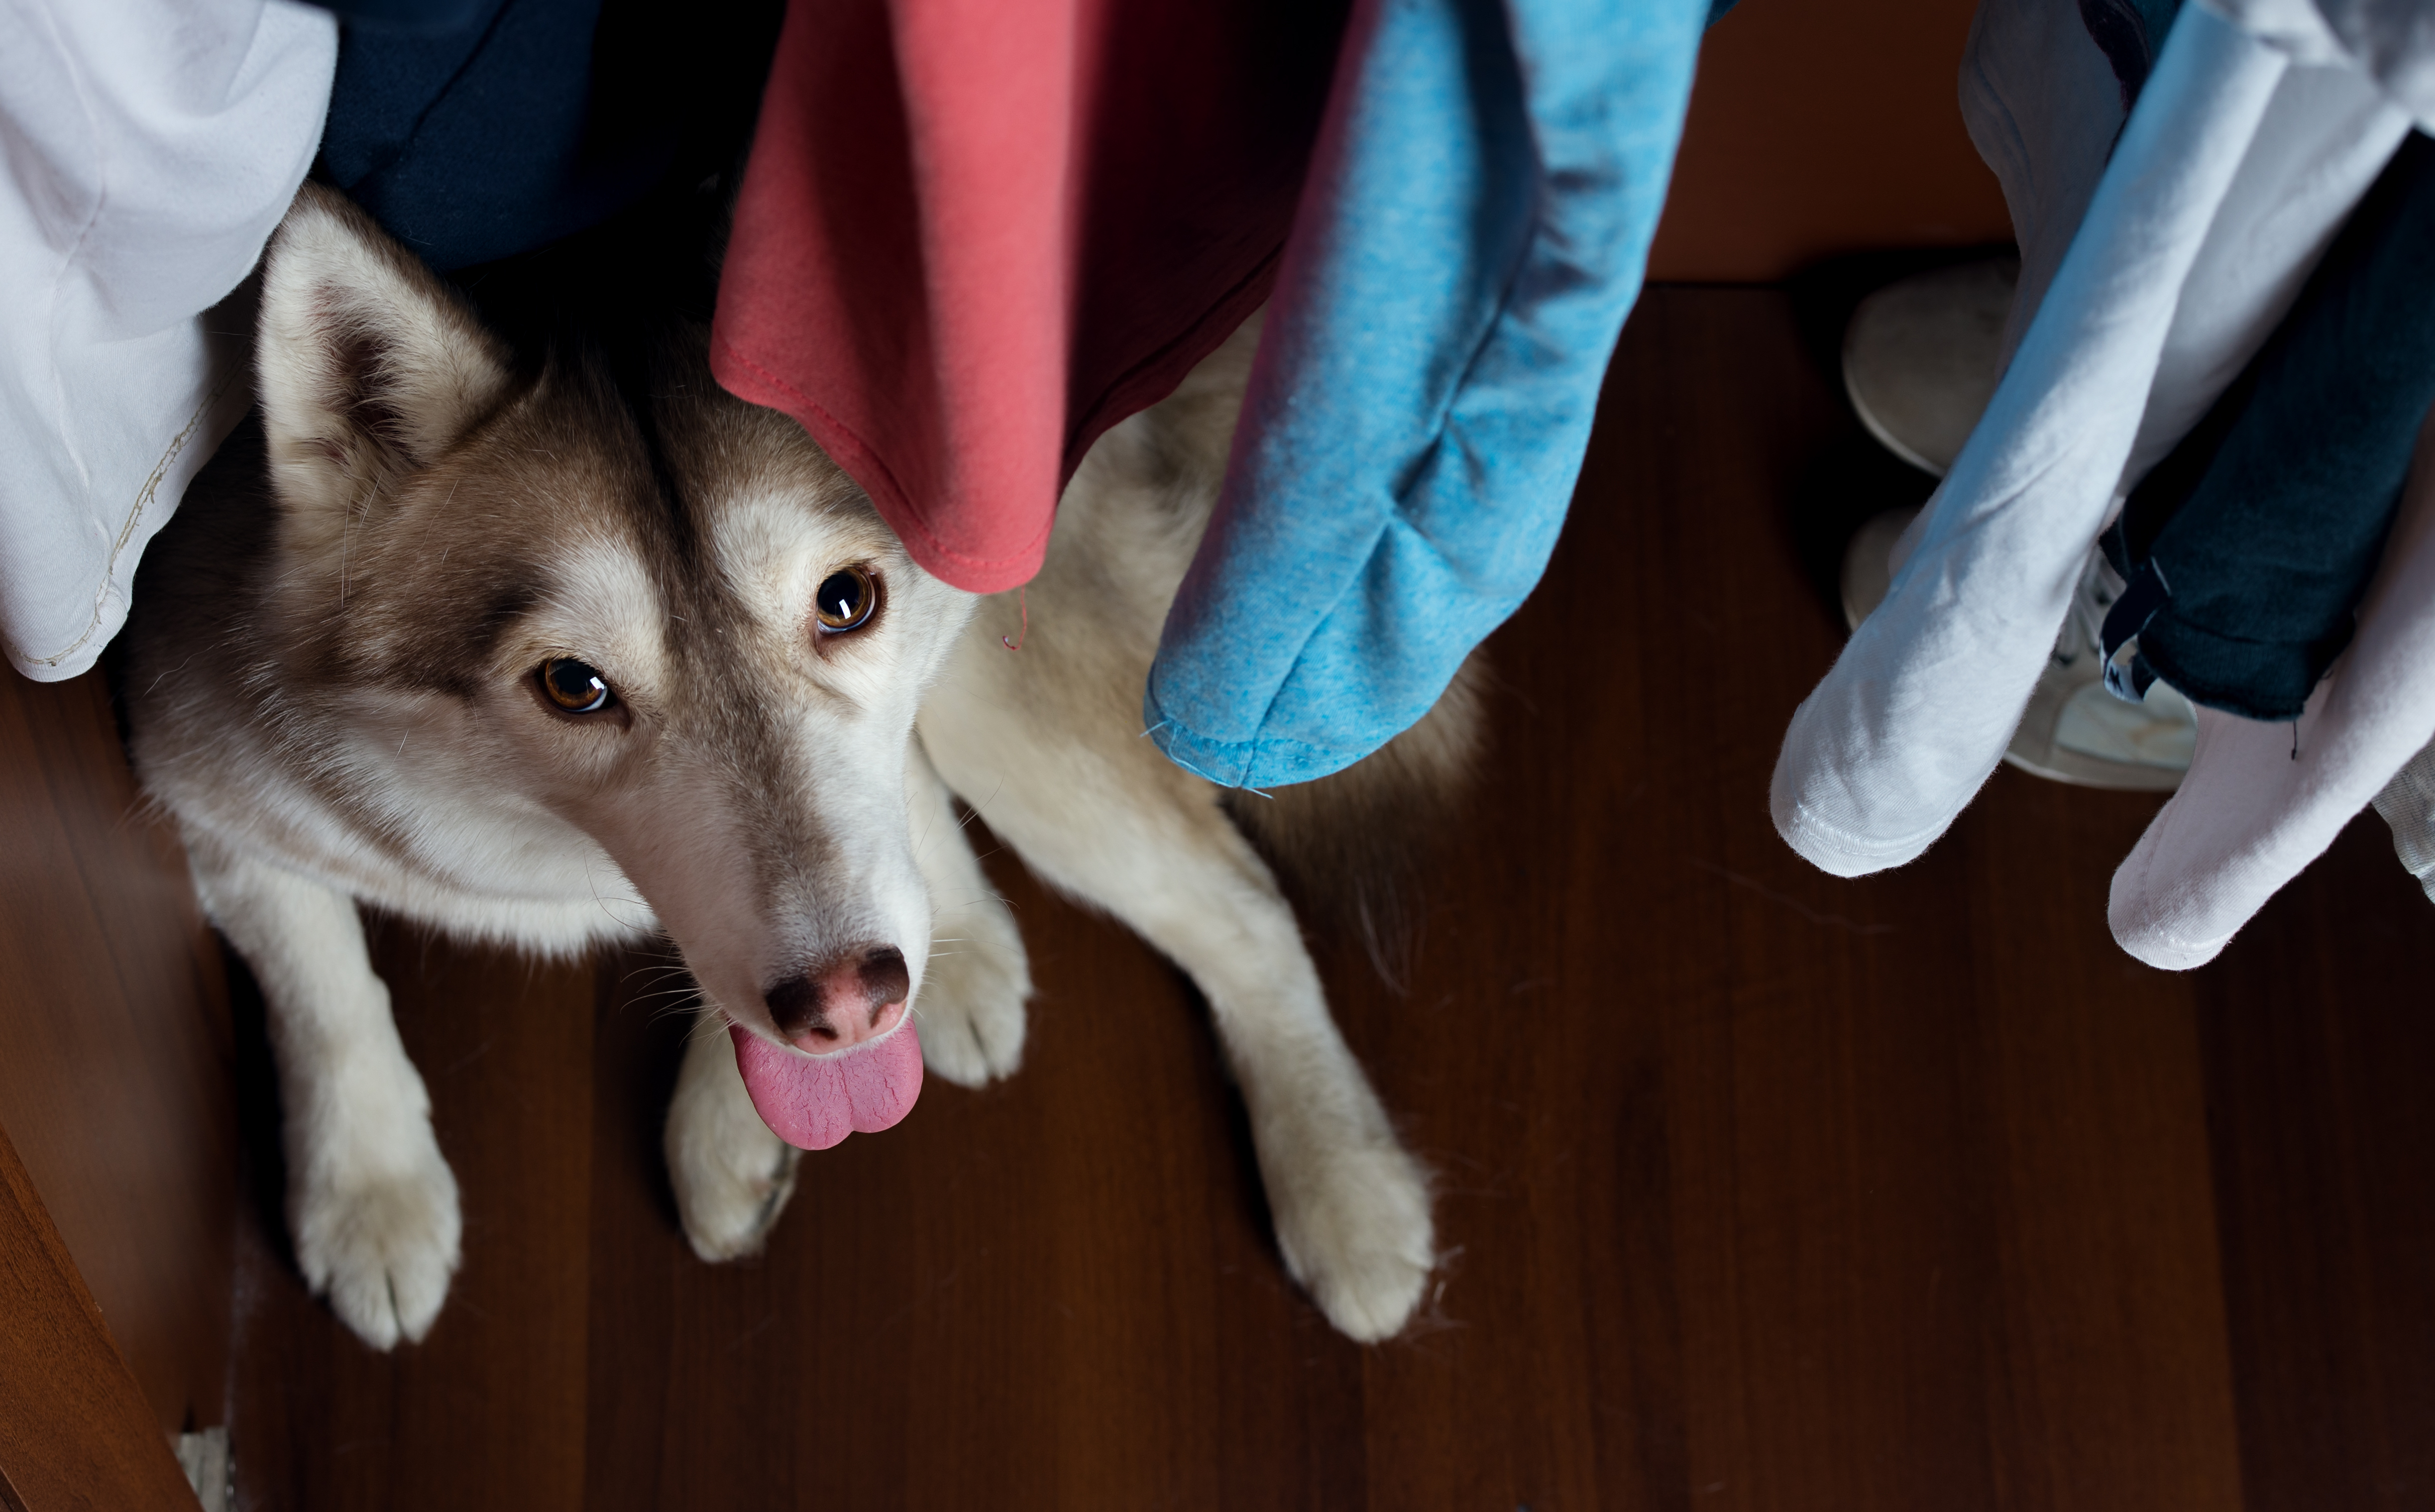 Mystery solved — this is how a dog wears pants